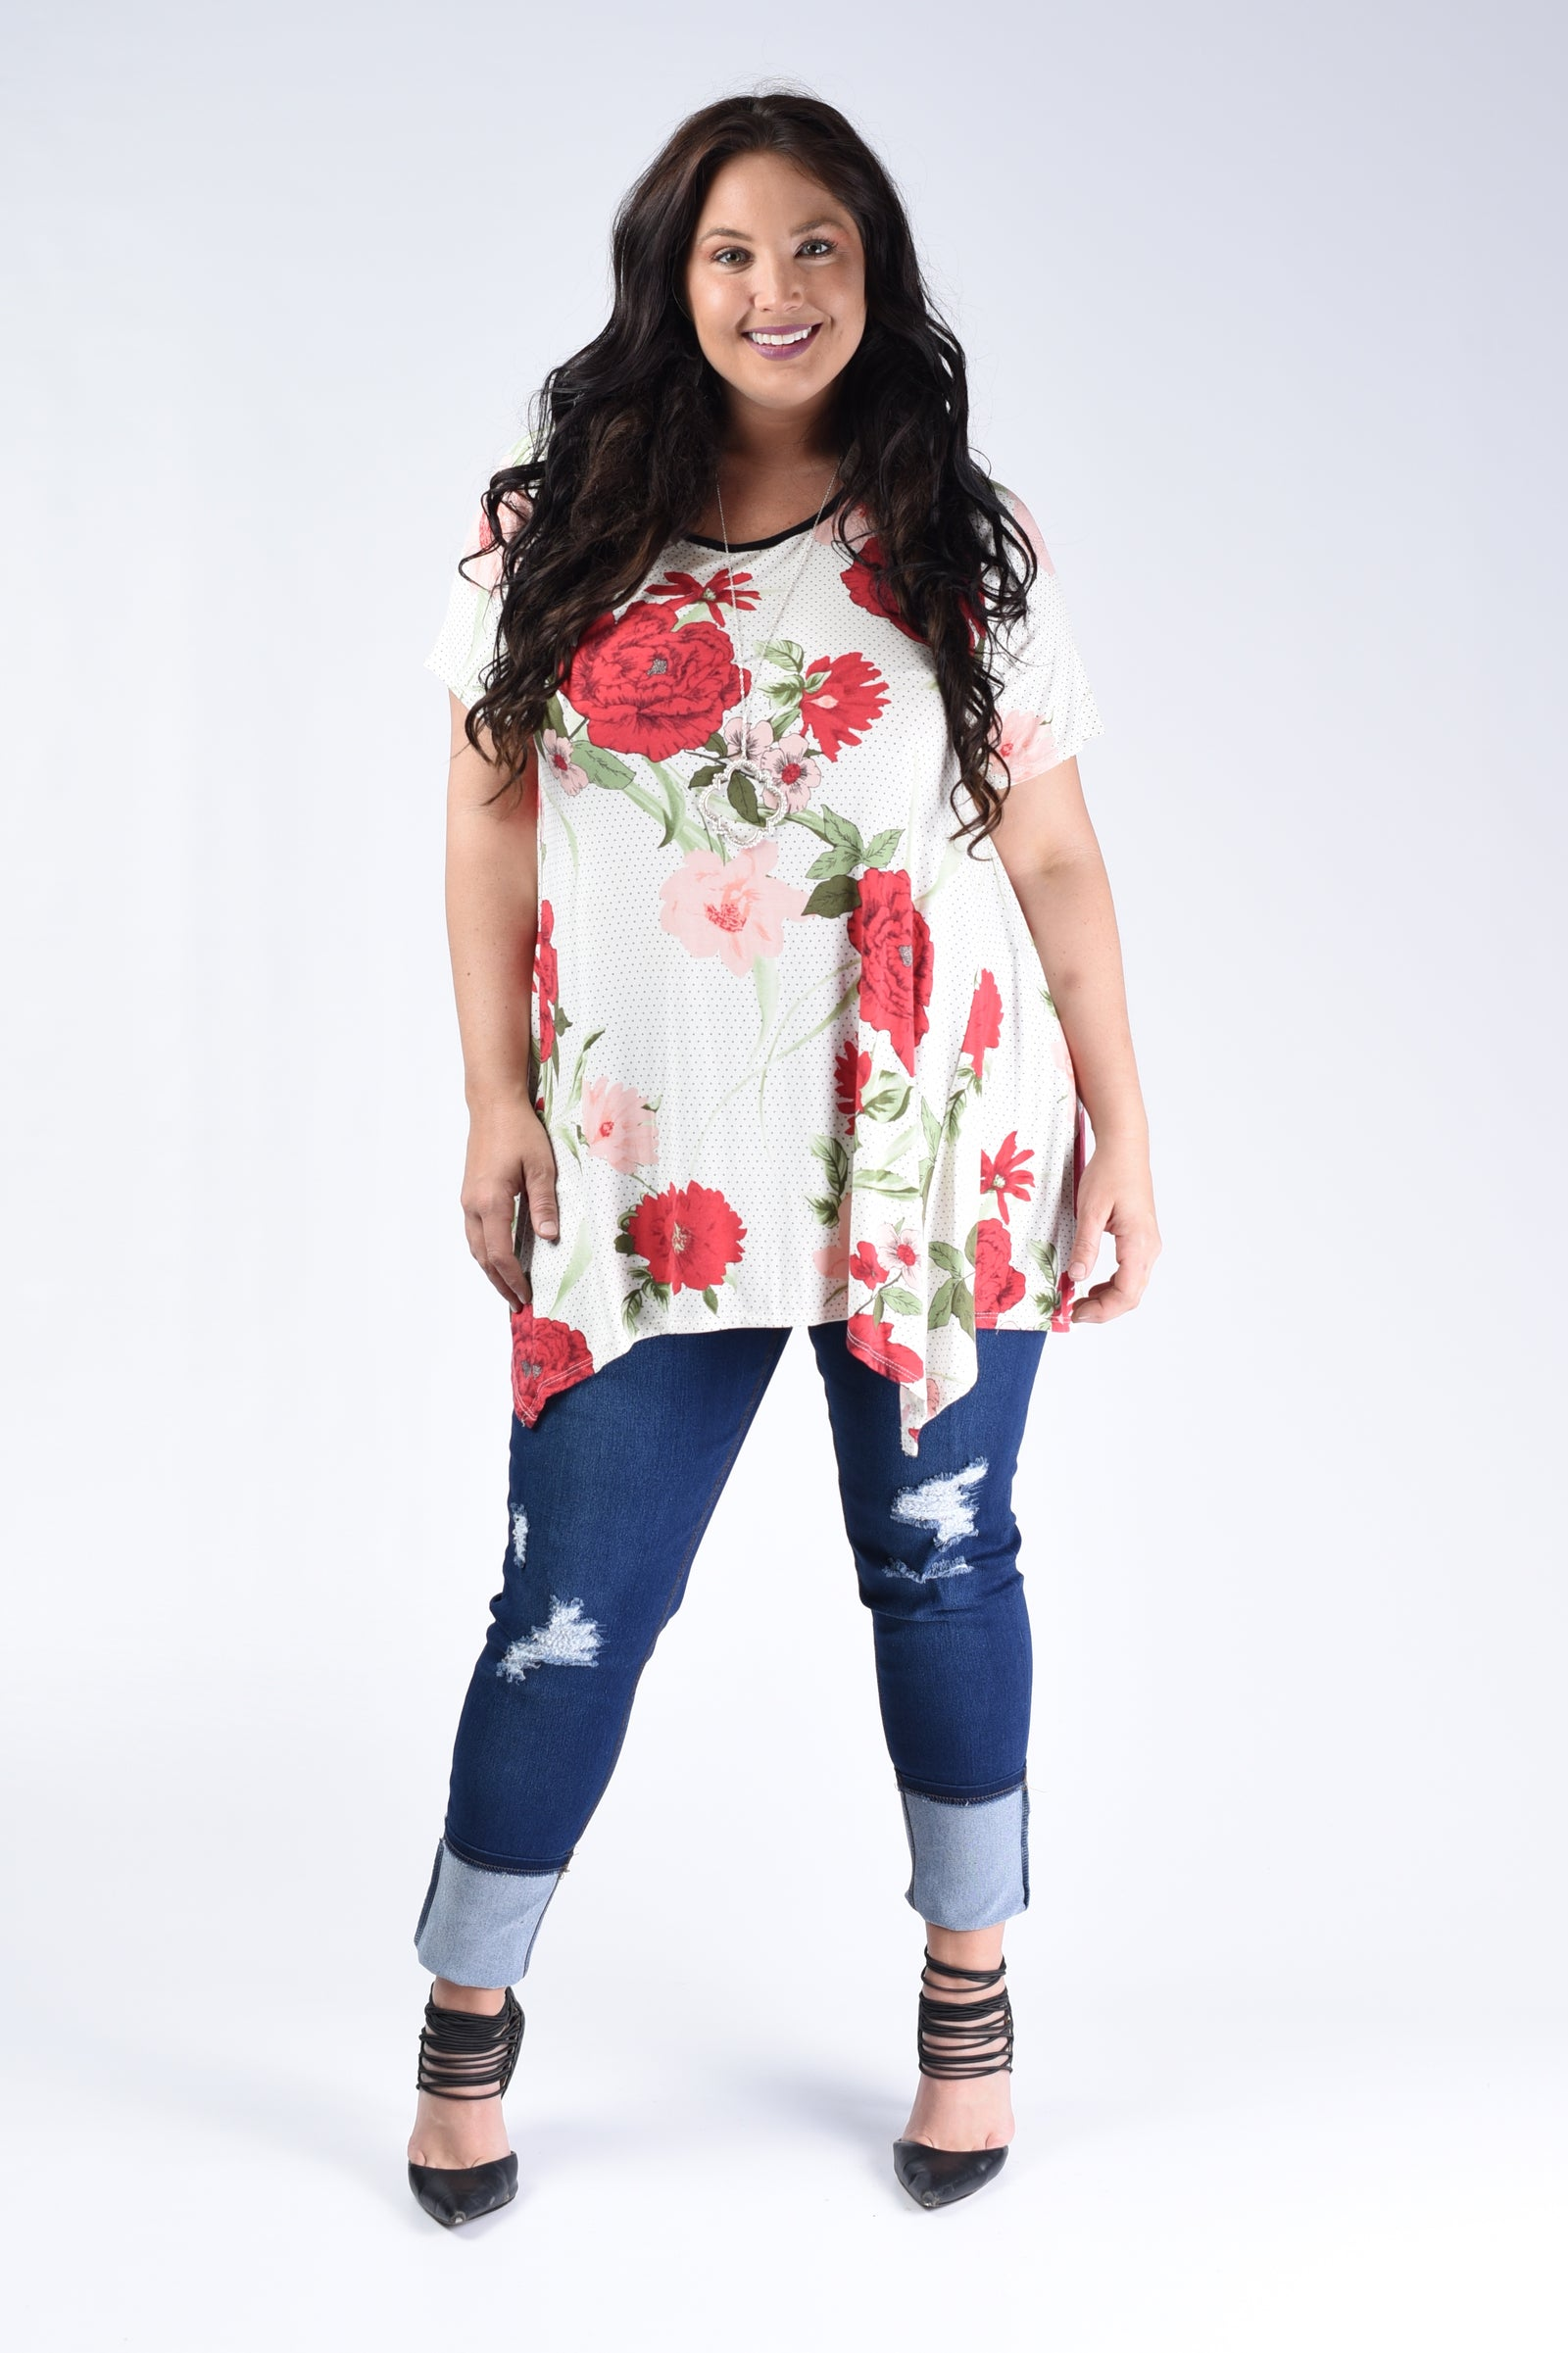 Red Floral Lace-Up Back Top - www.mycurvystore.com - Curvy Boutique - Plus Size